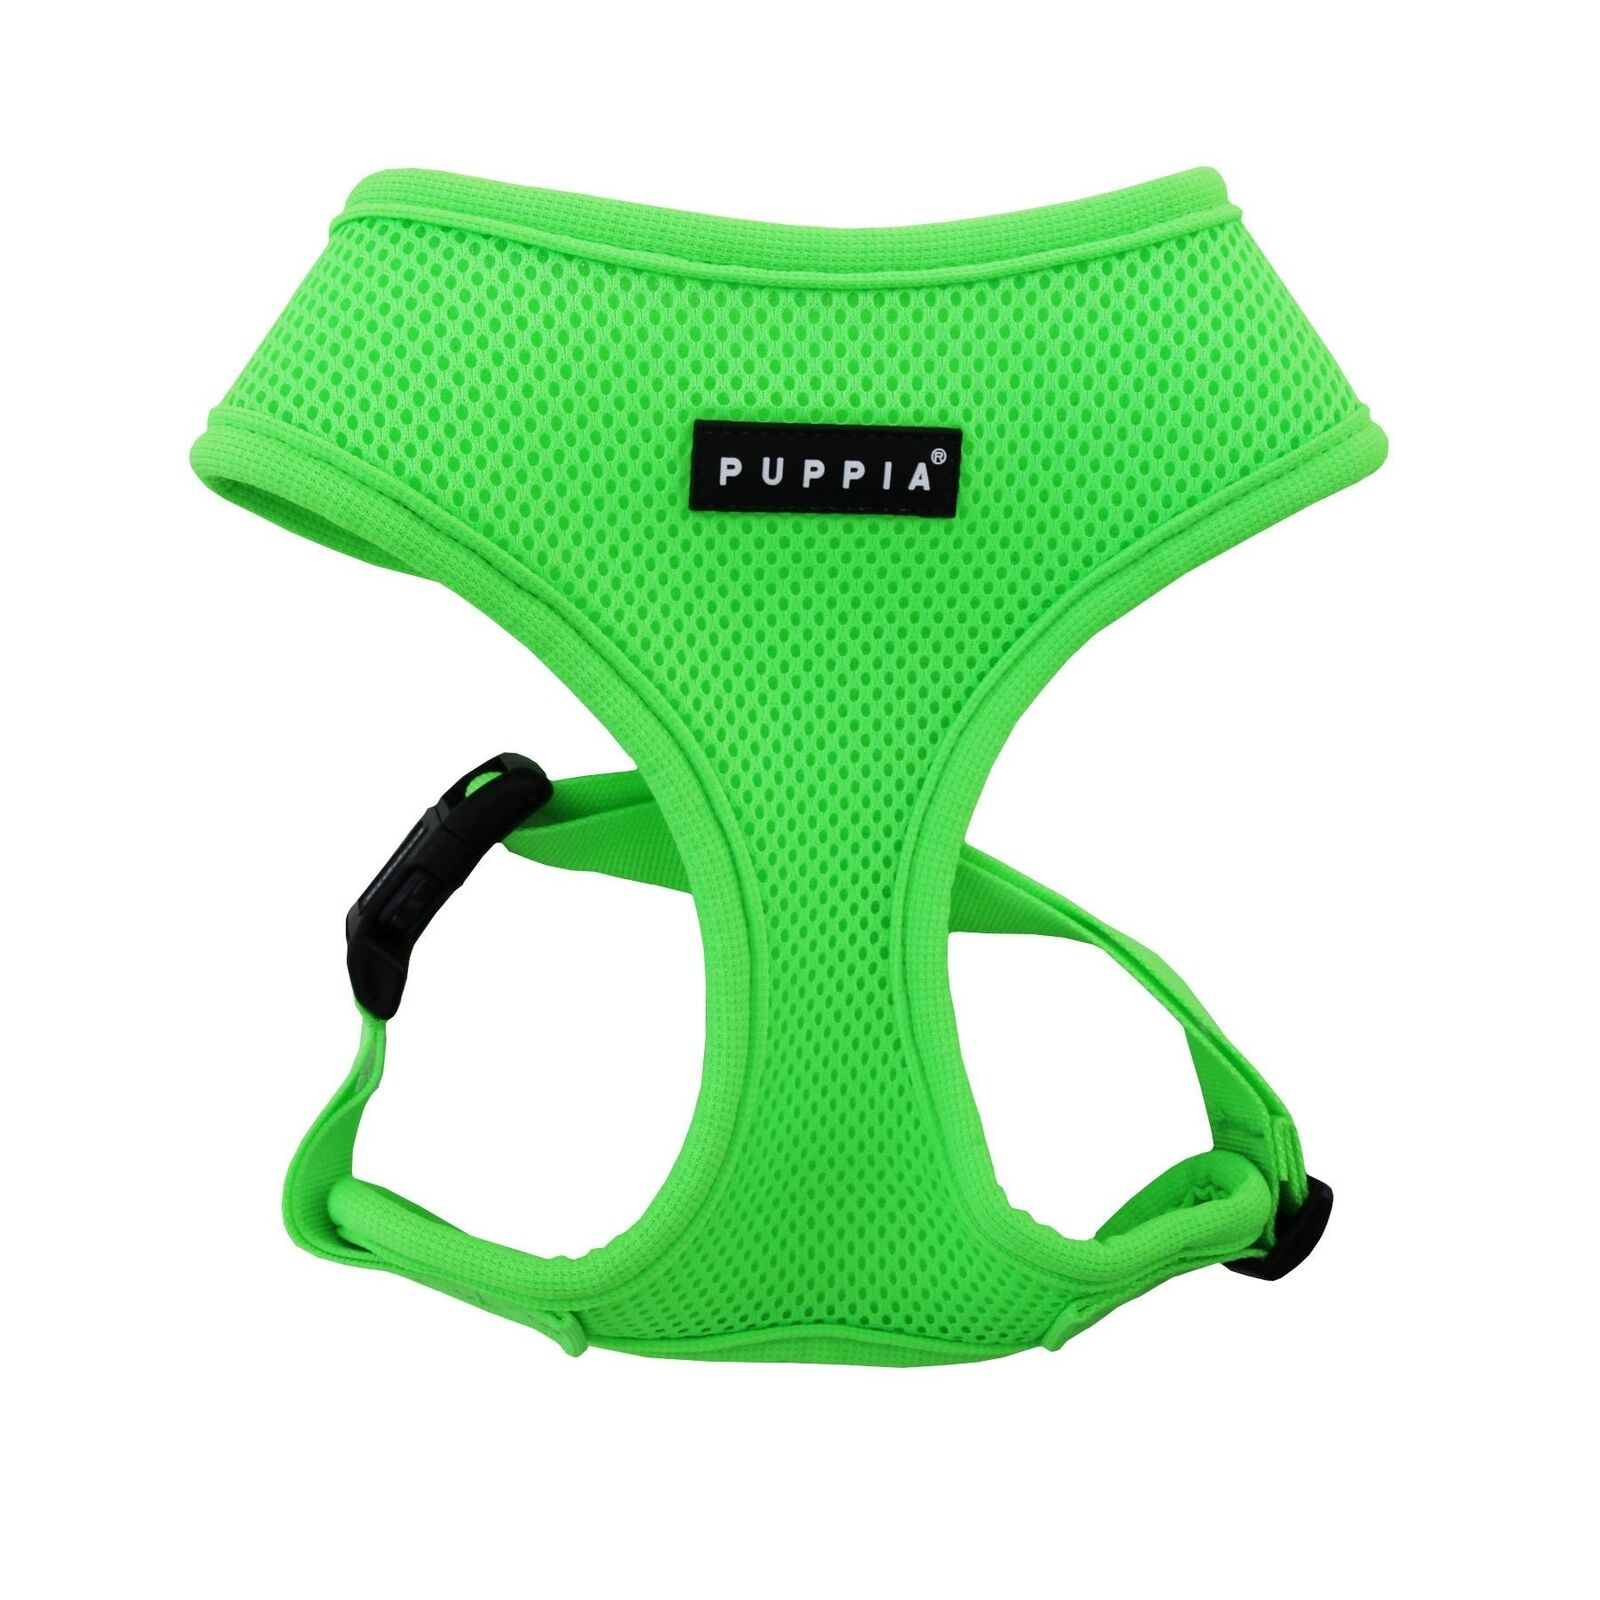 Puppia Neon Harness, Green, Large